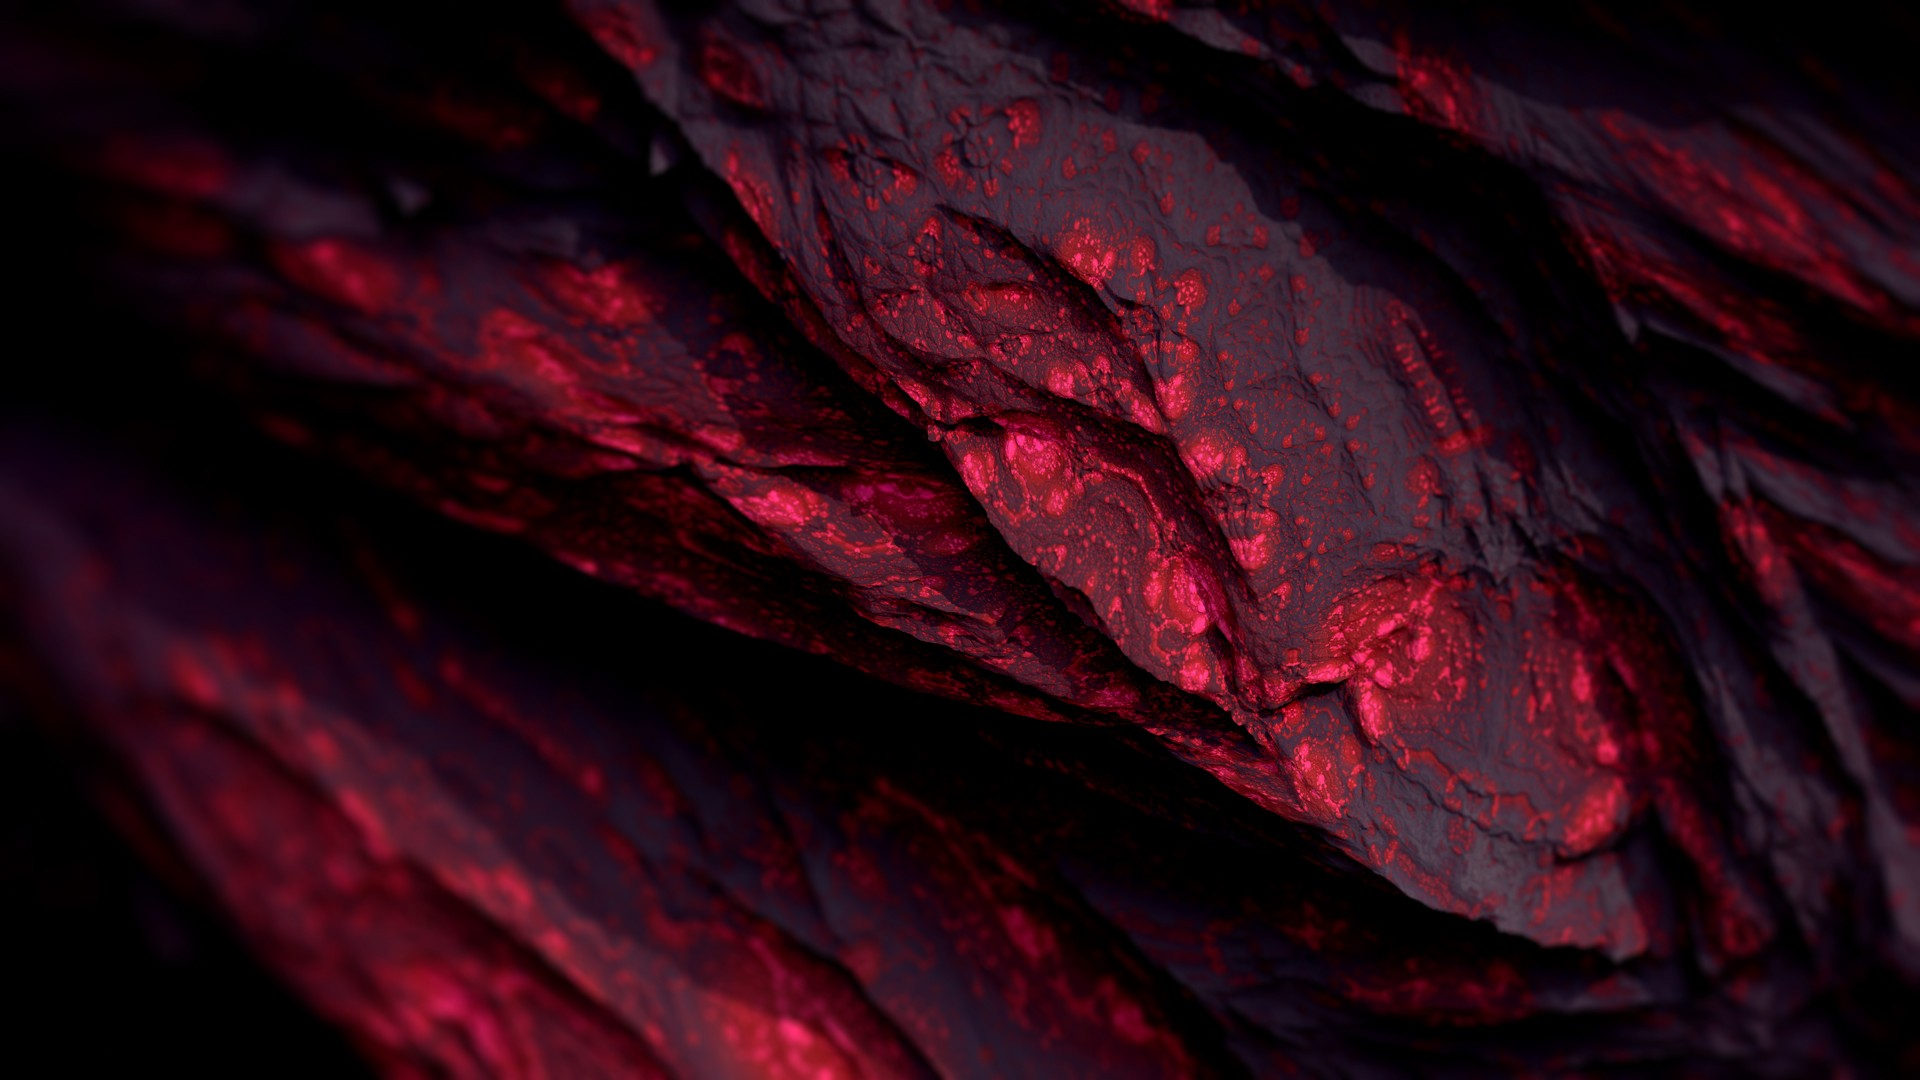 General 1920x1080 Procedural Minerals mineral red dark abstract CGI render digital art artwork